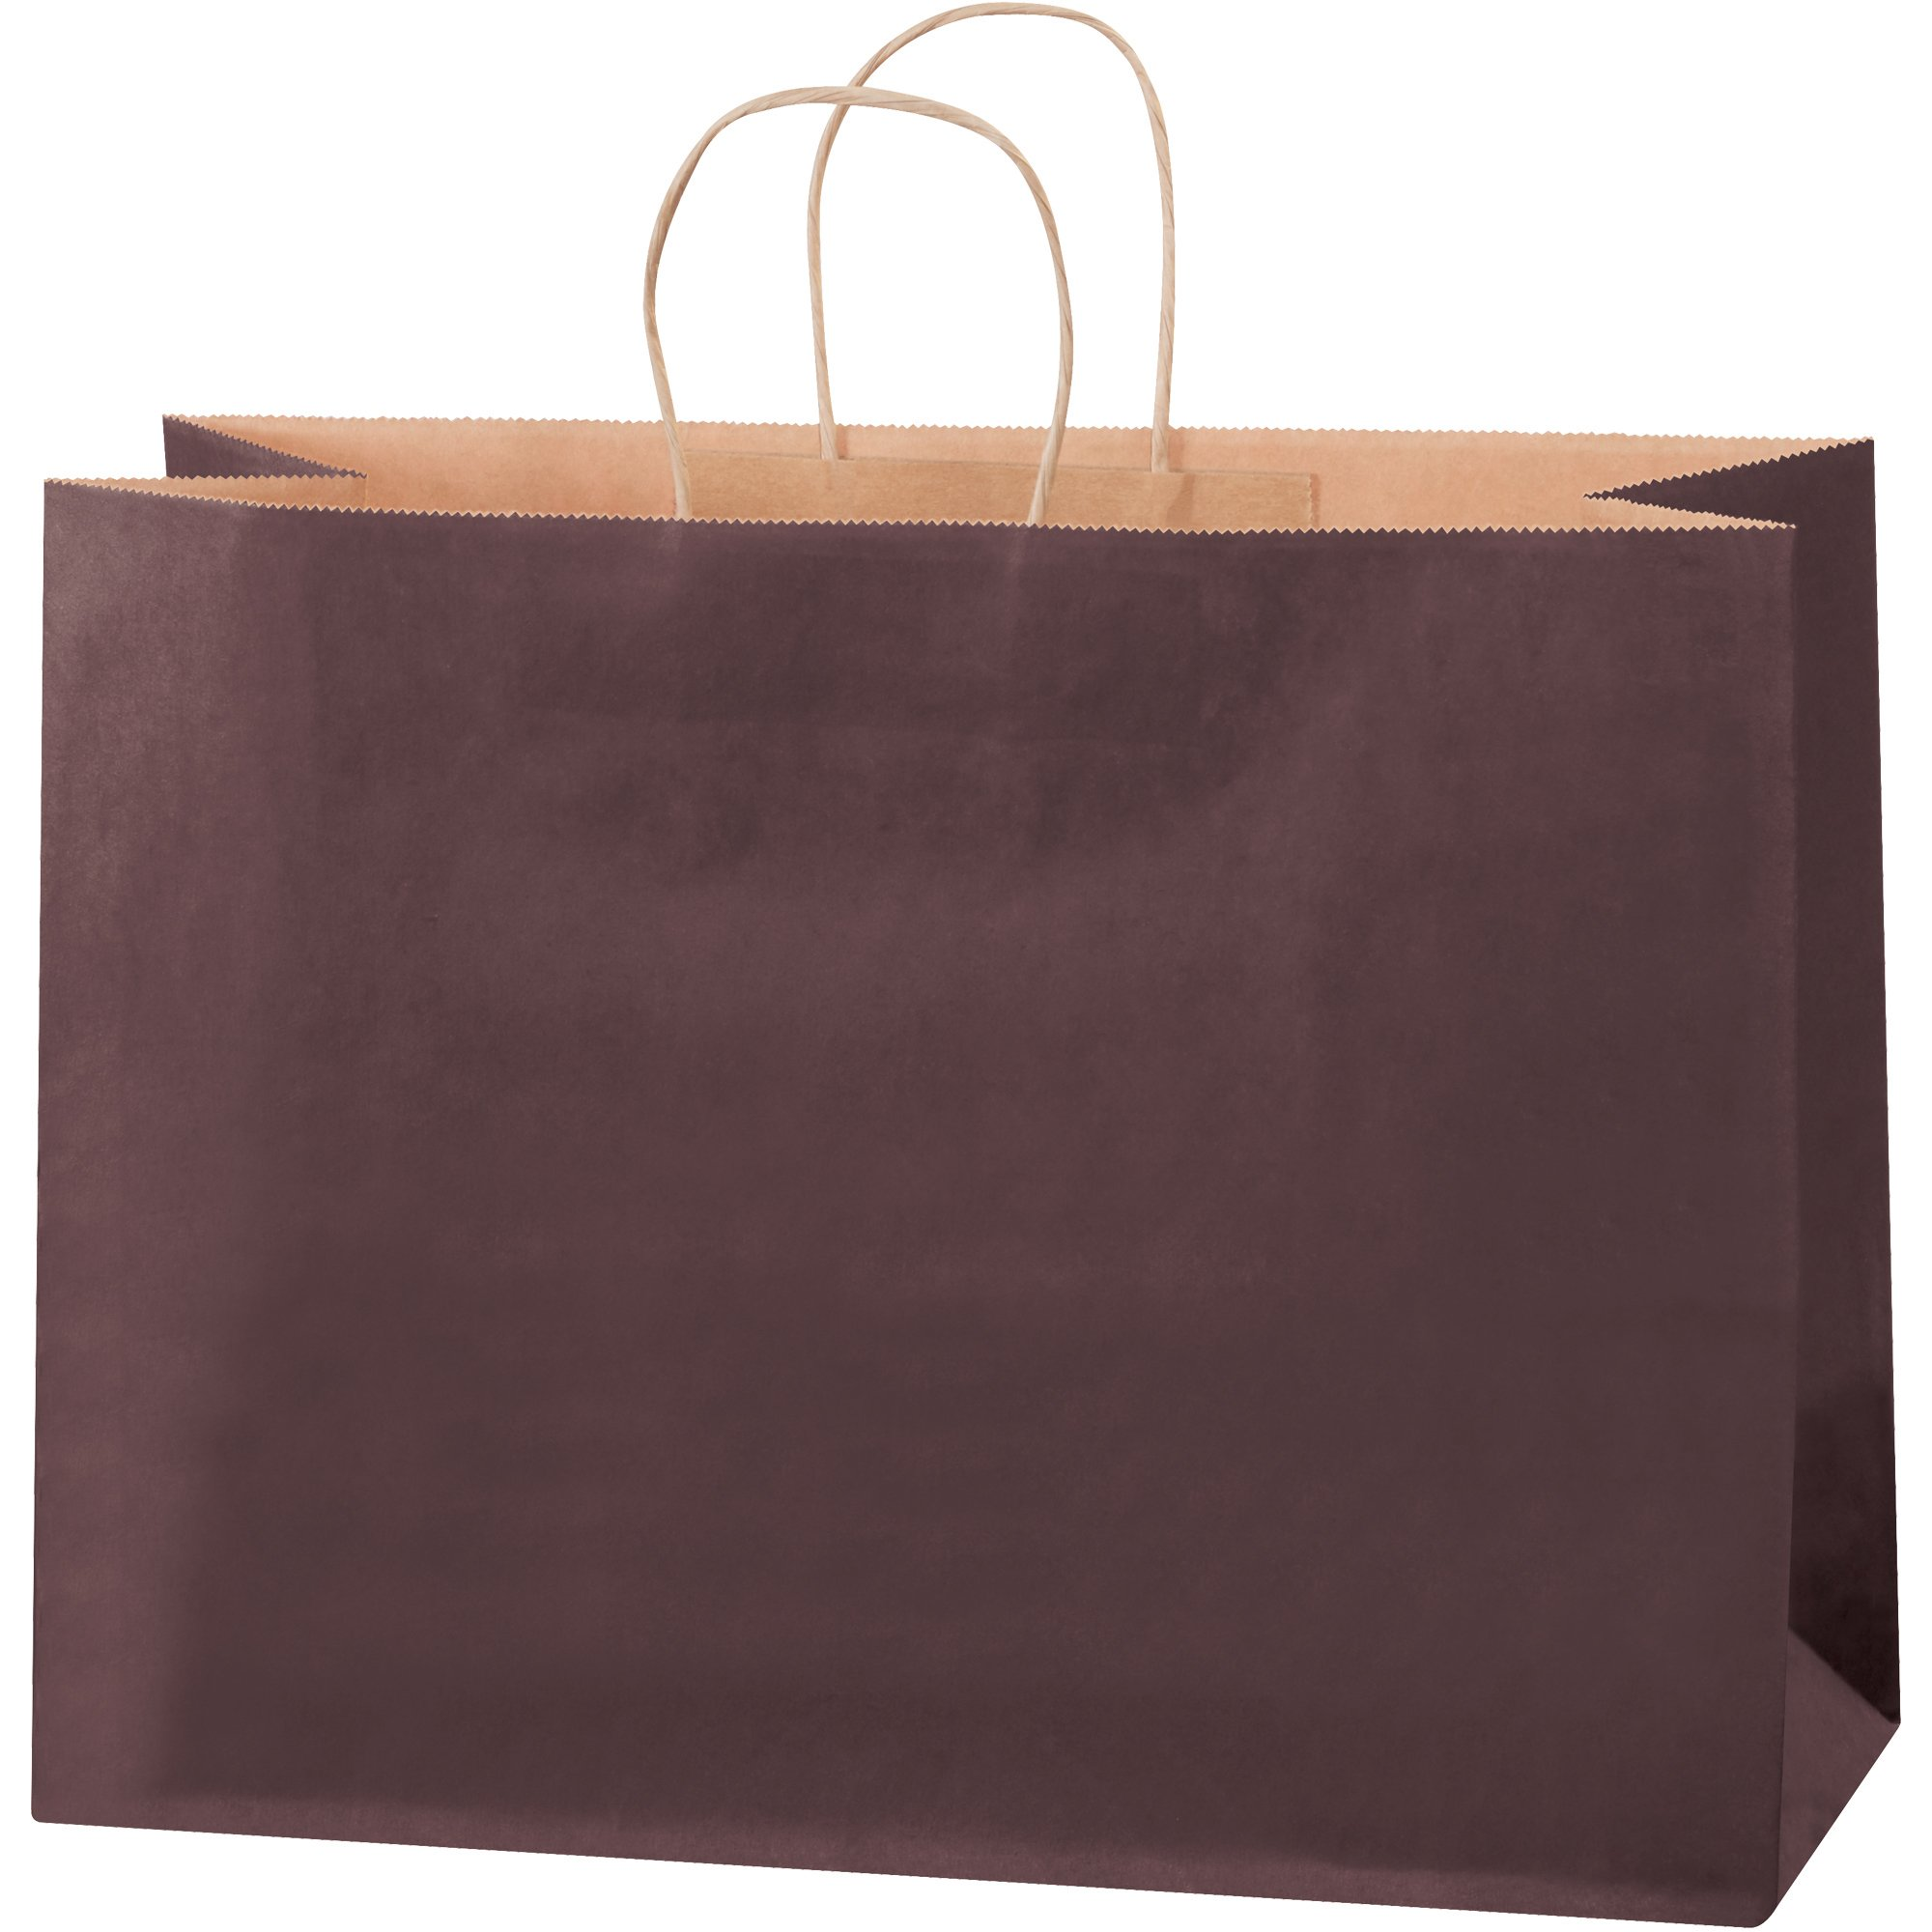 Tinted Shopping Bags, 16'' x 6'' x 12'', Brown, 250/Case